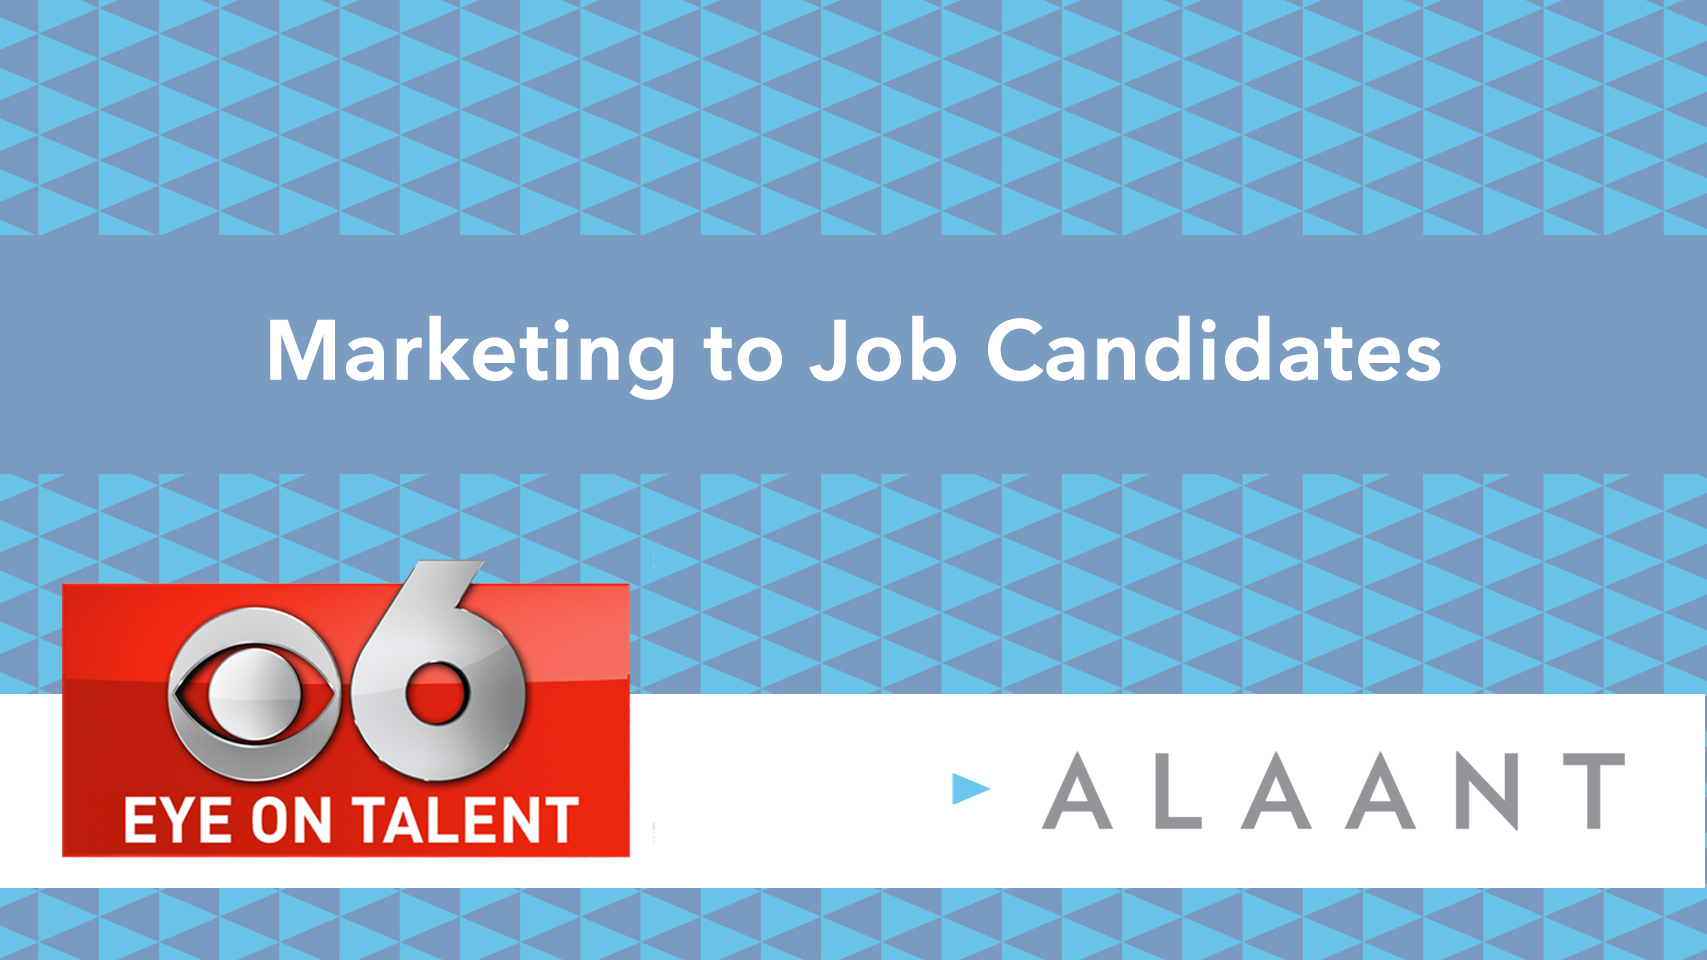 Eye on Talent: Marketing to Job Candidates